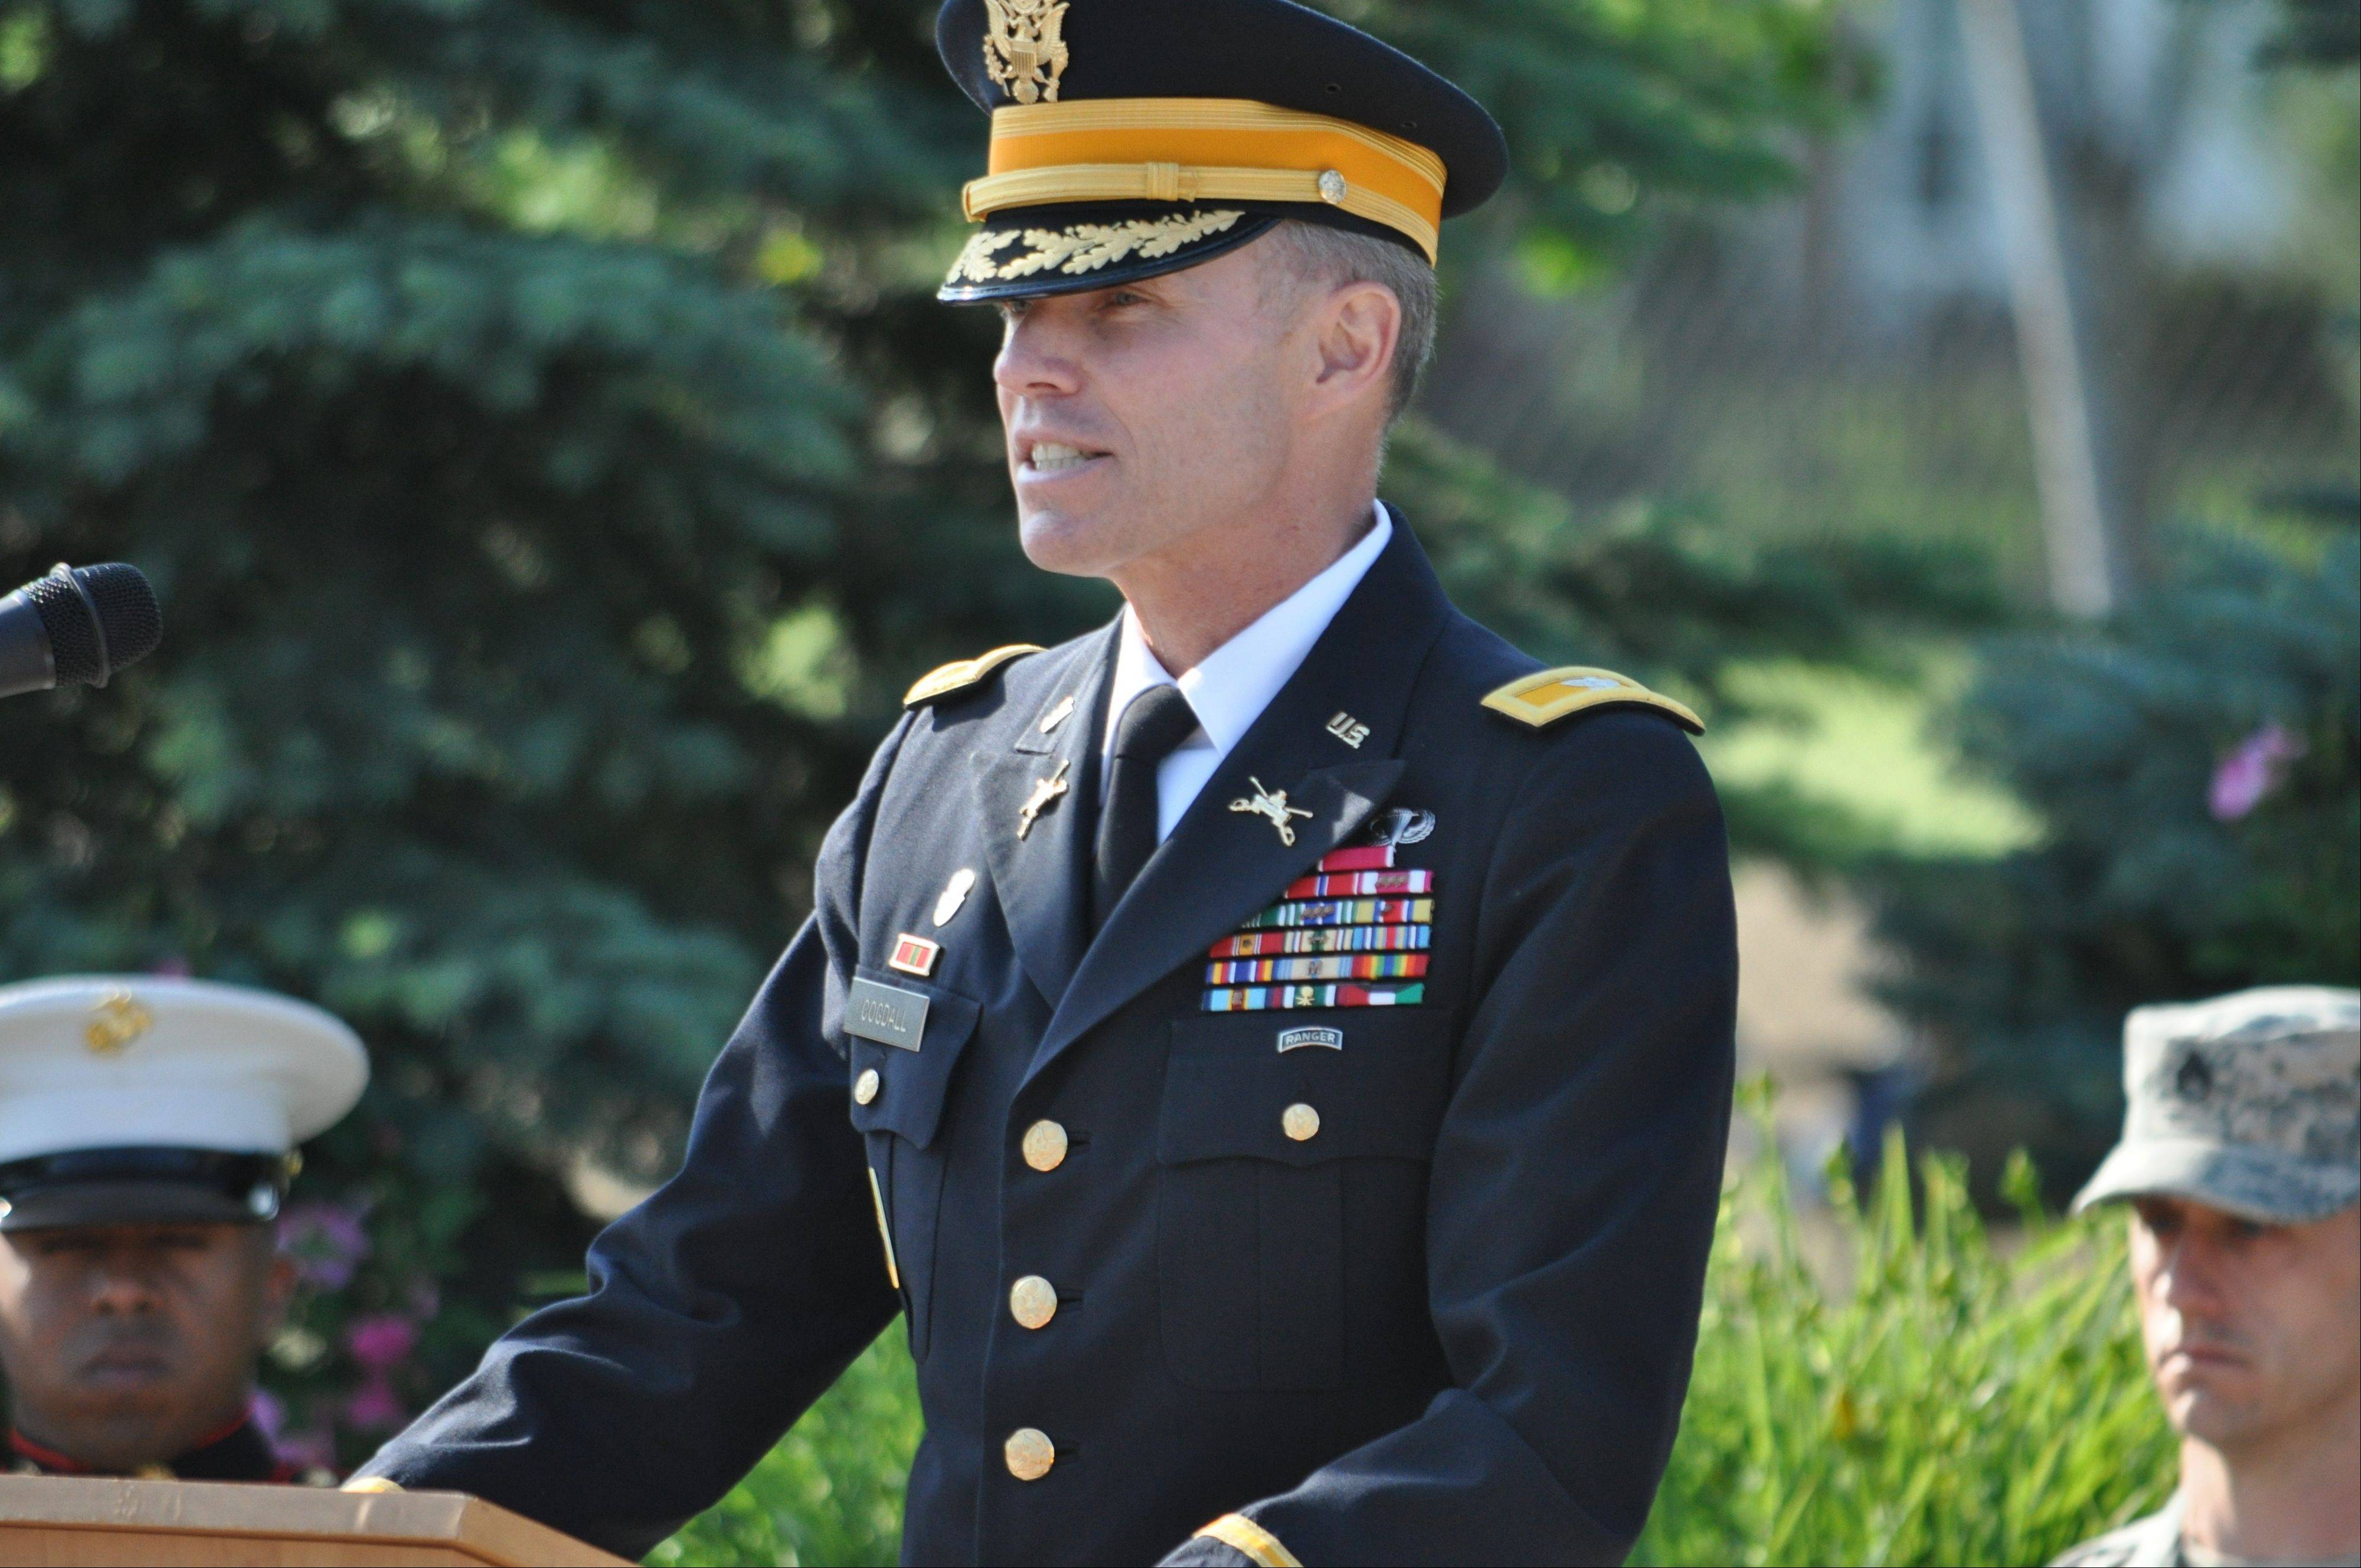 Col. Tom Cogdall of the United States Army was the guest speaker Friday at Flag Day ceremonies held at Veterans Park, 1300 N. Weiland Road, Buffalo Grove. More than 100 people attended.